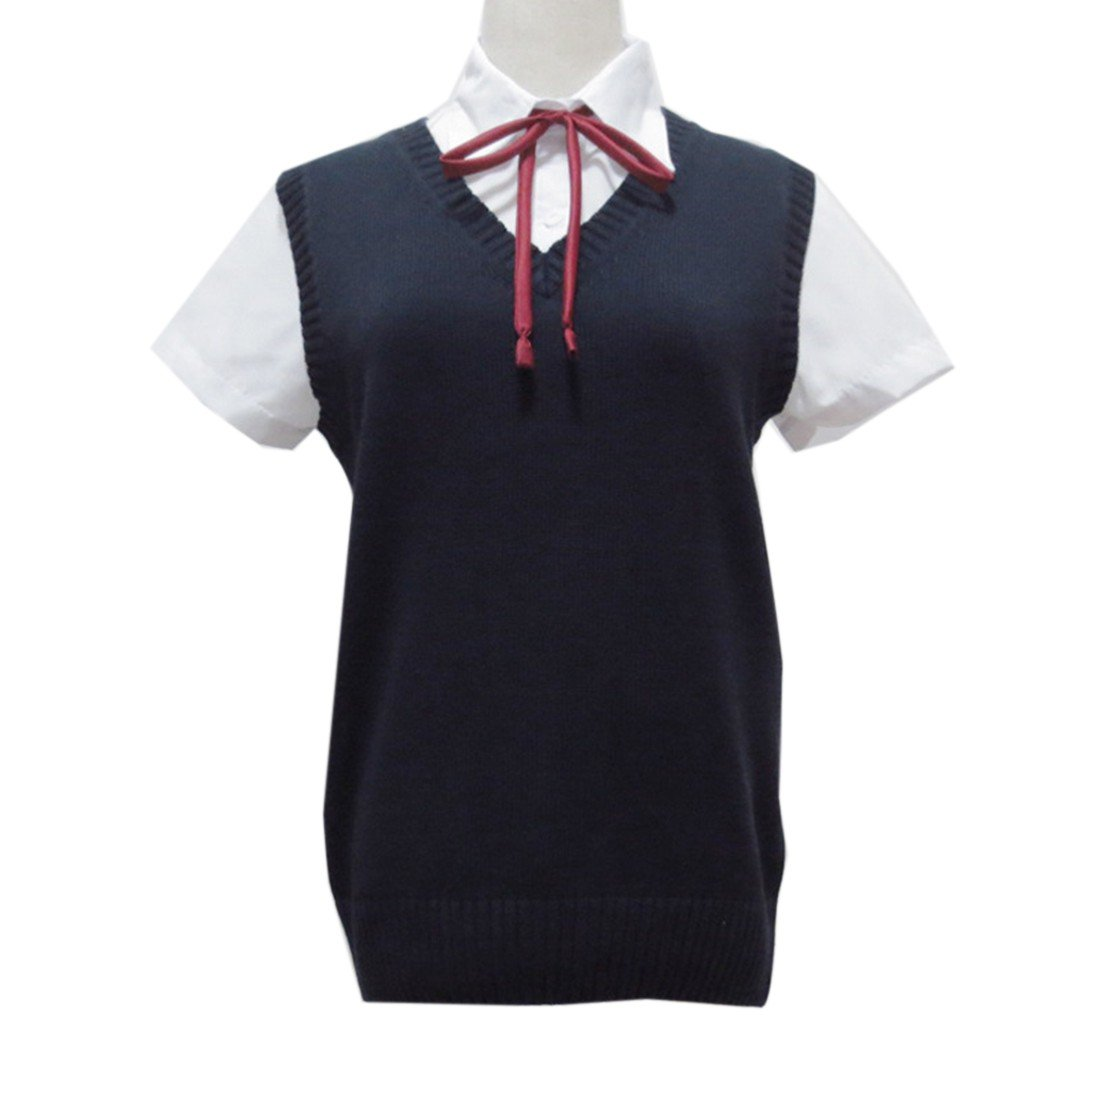 Winson Women Sleeveless V Neck Cotton School Girls JK Uniforms Vests Knitting Tops